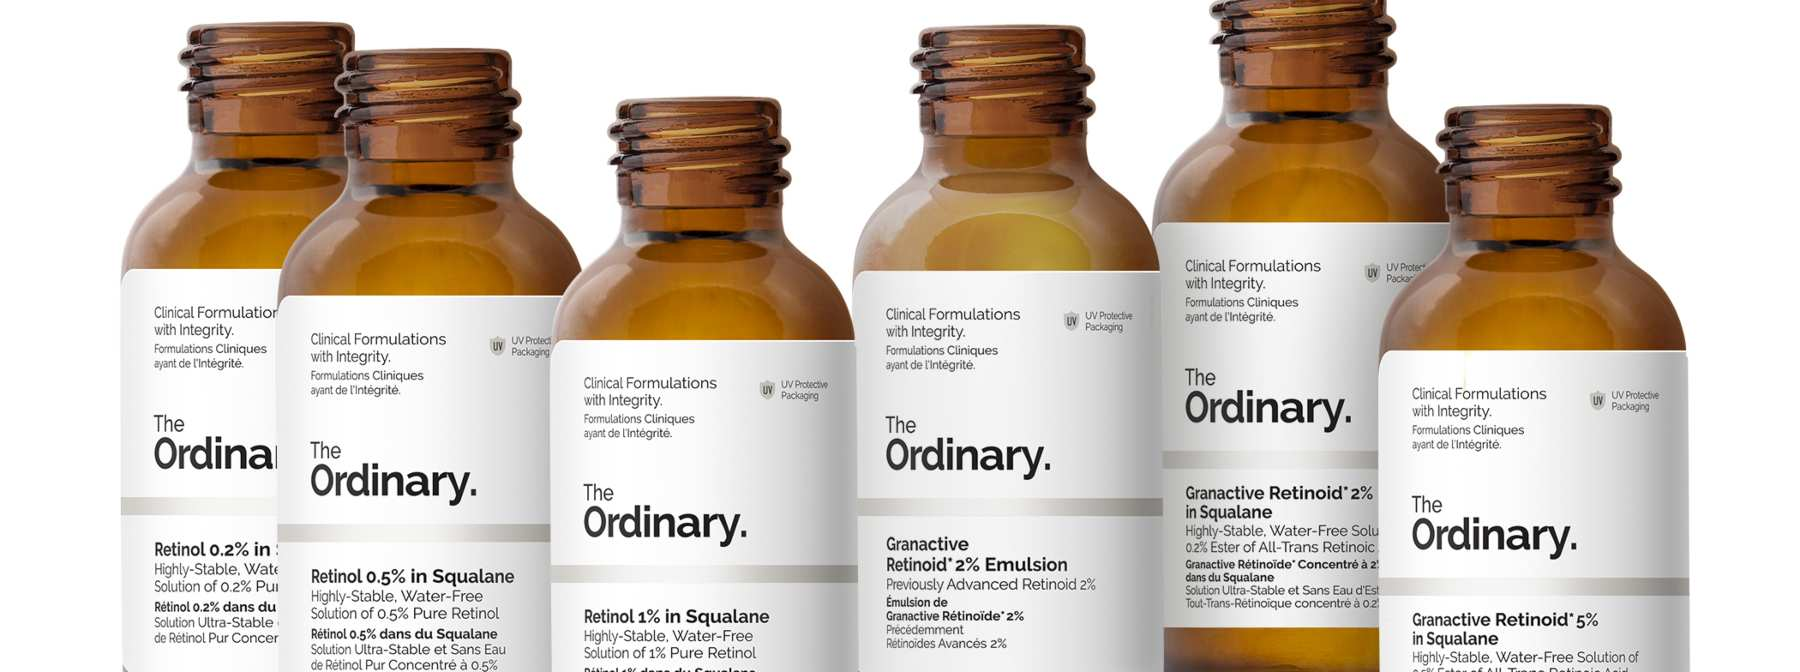 Top 10 Best Ordinary Products of 2020